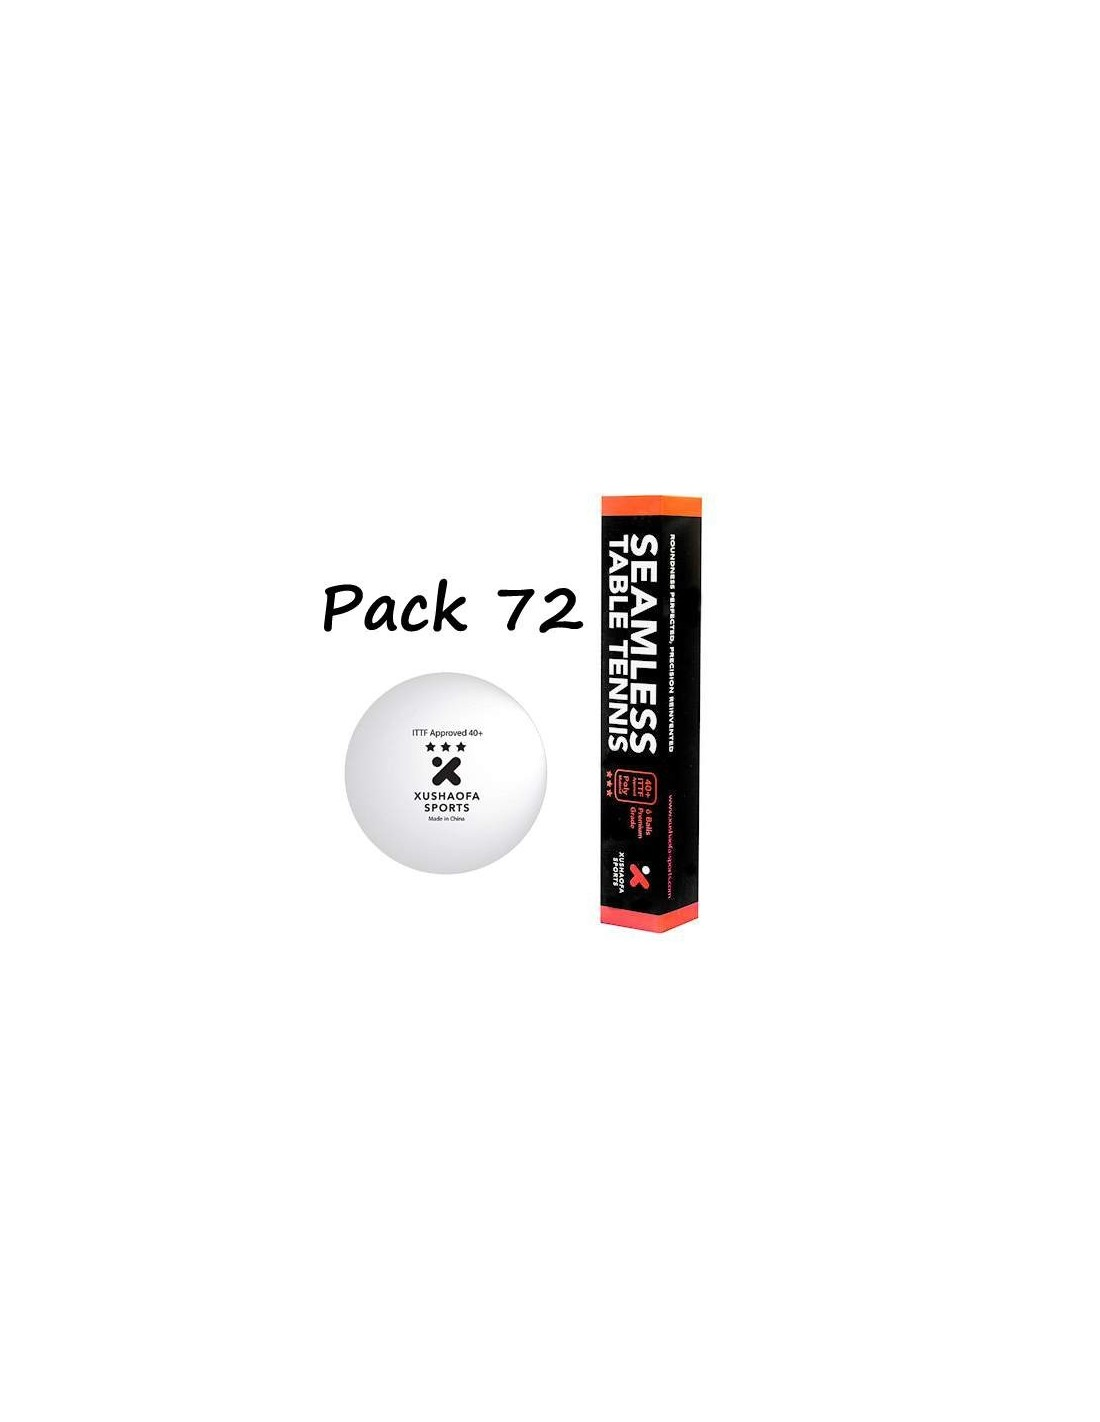 Balle plastique xushaofa 3 pack72 tennis de table balles - Balle plastique tennis de table ...